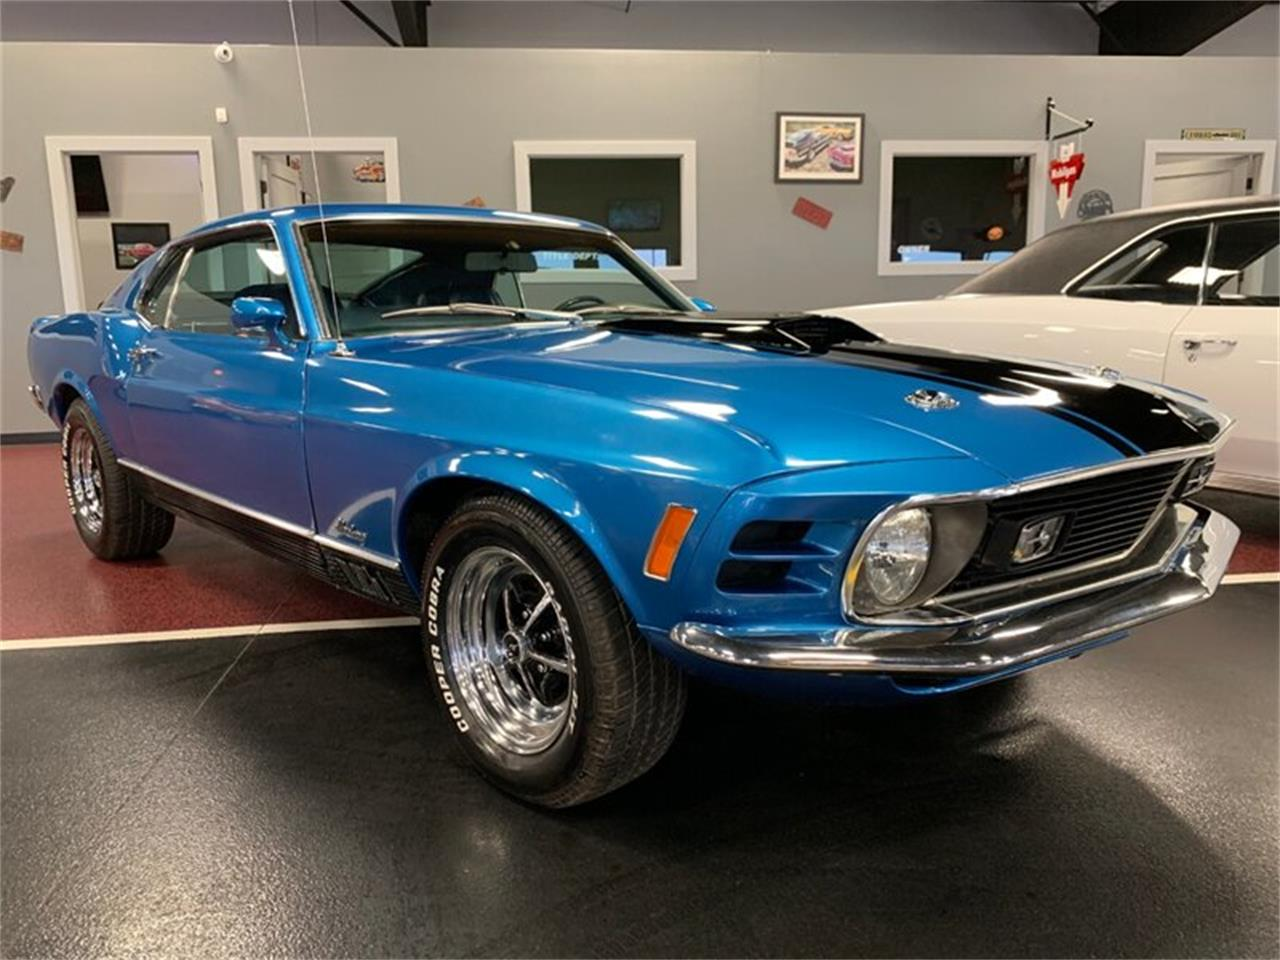 Large Picture of Classic 1970 Mustang Mach 1 Offered by Rides Auto Sales - QGAG